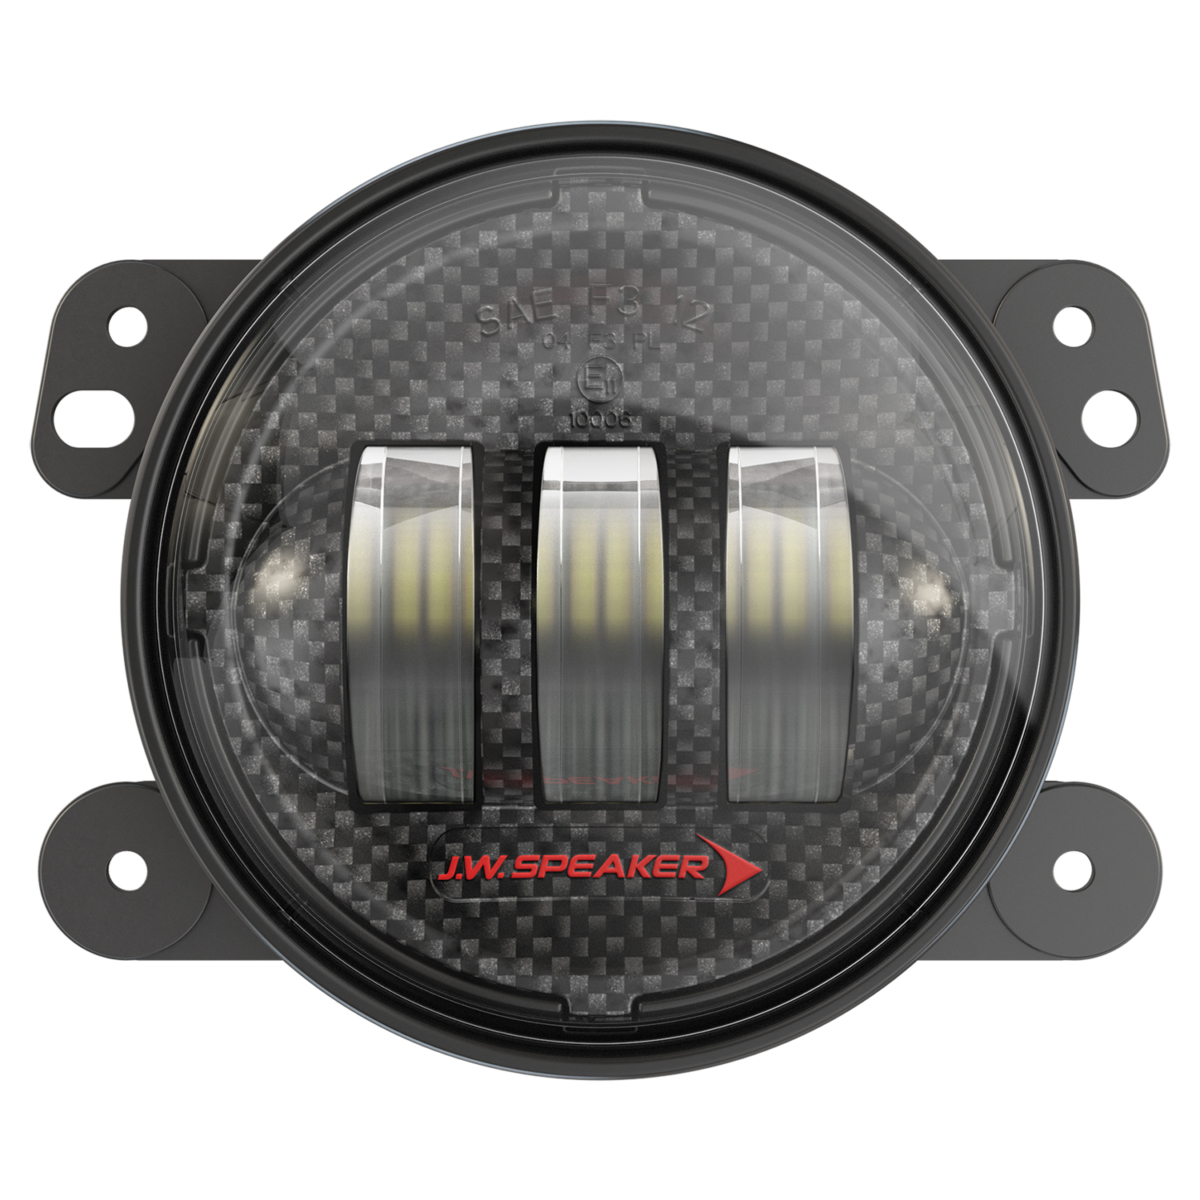 JW Speaker LED Fog Lights Model 6145 J2 Series for 2007-2018 Wrangler JK